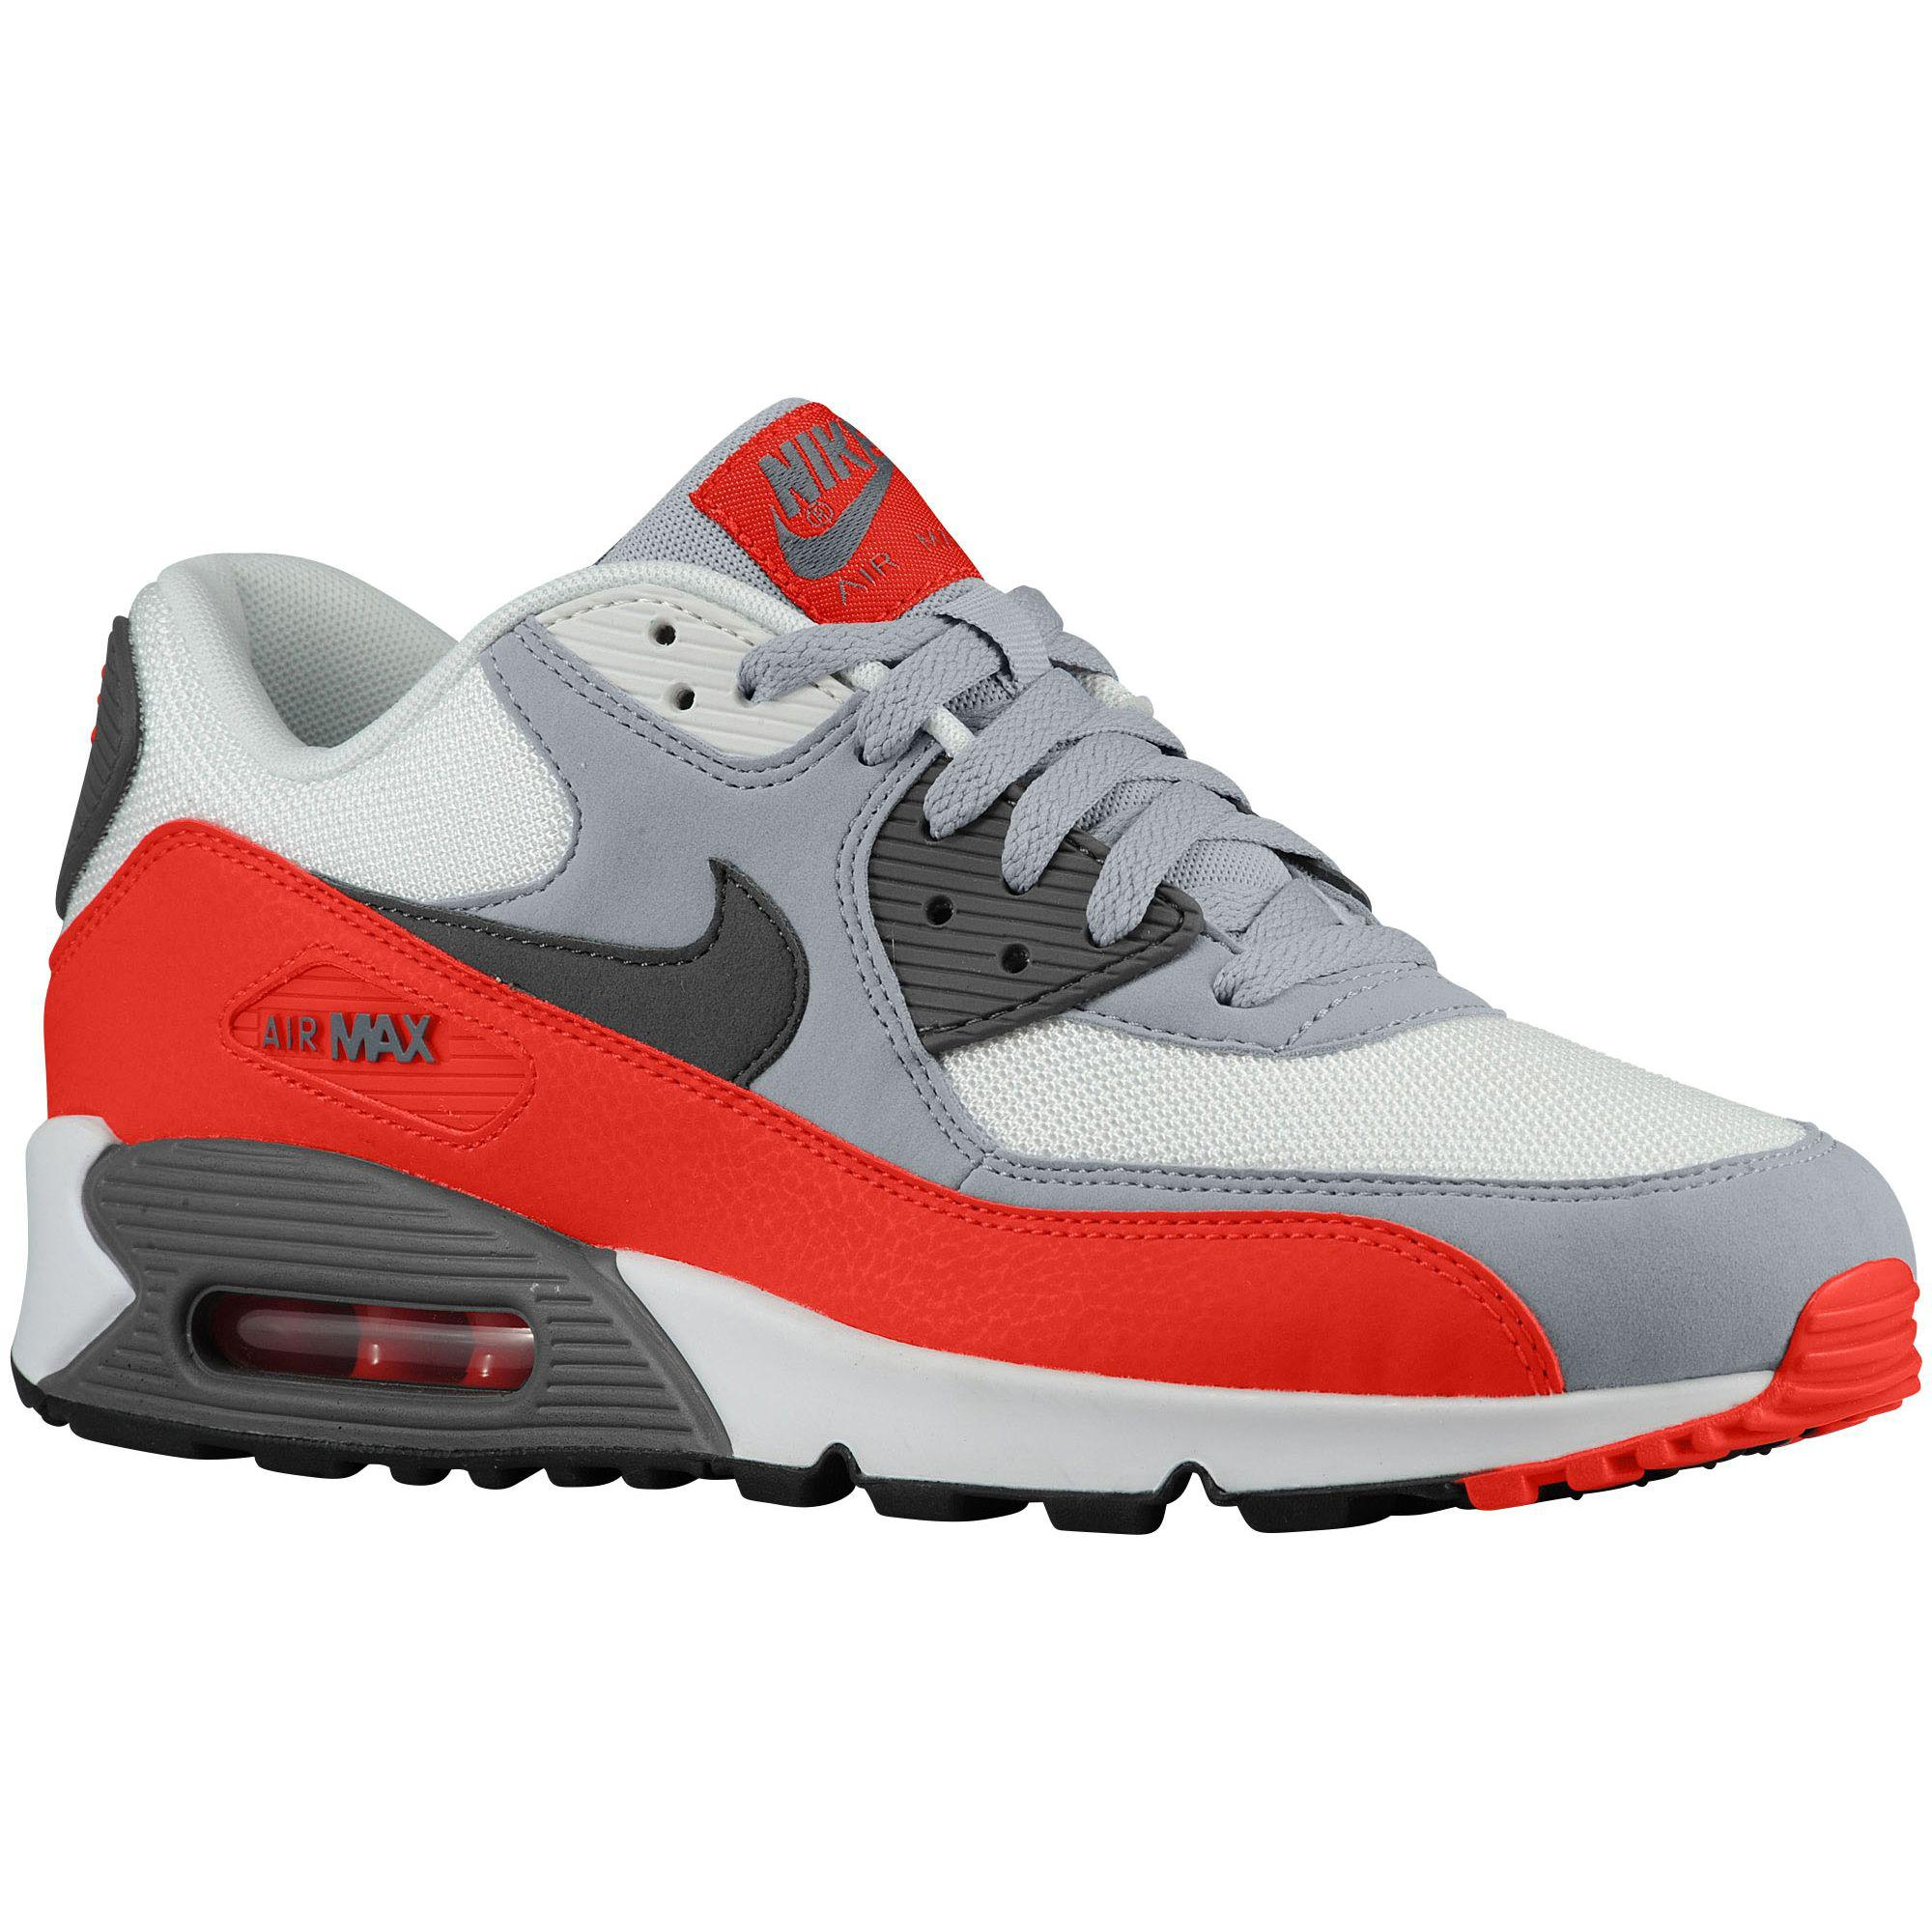 wholesale dealer c2990 0da66 Nike Air Max 90 - Men s at Champs Sports from Champs Sports